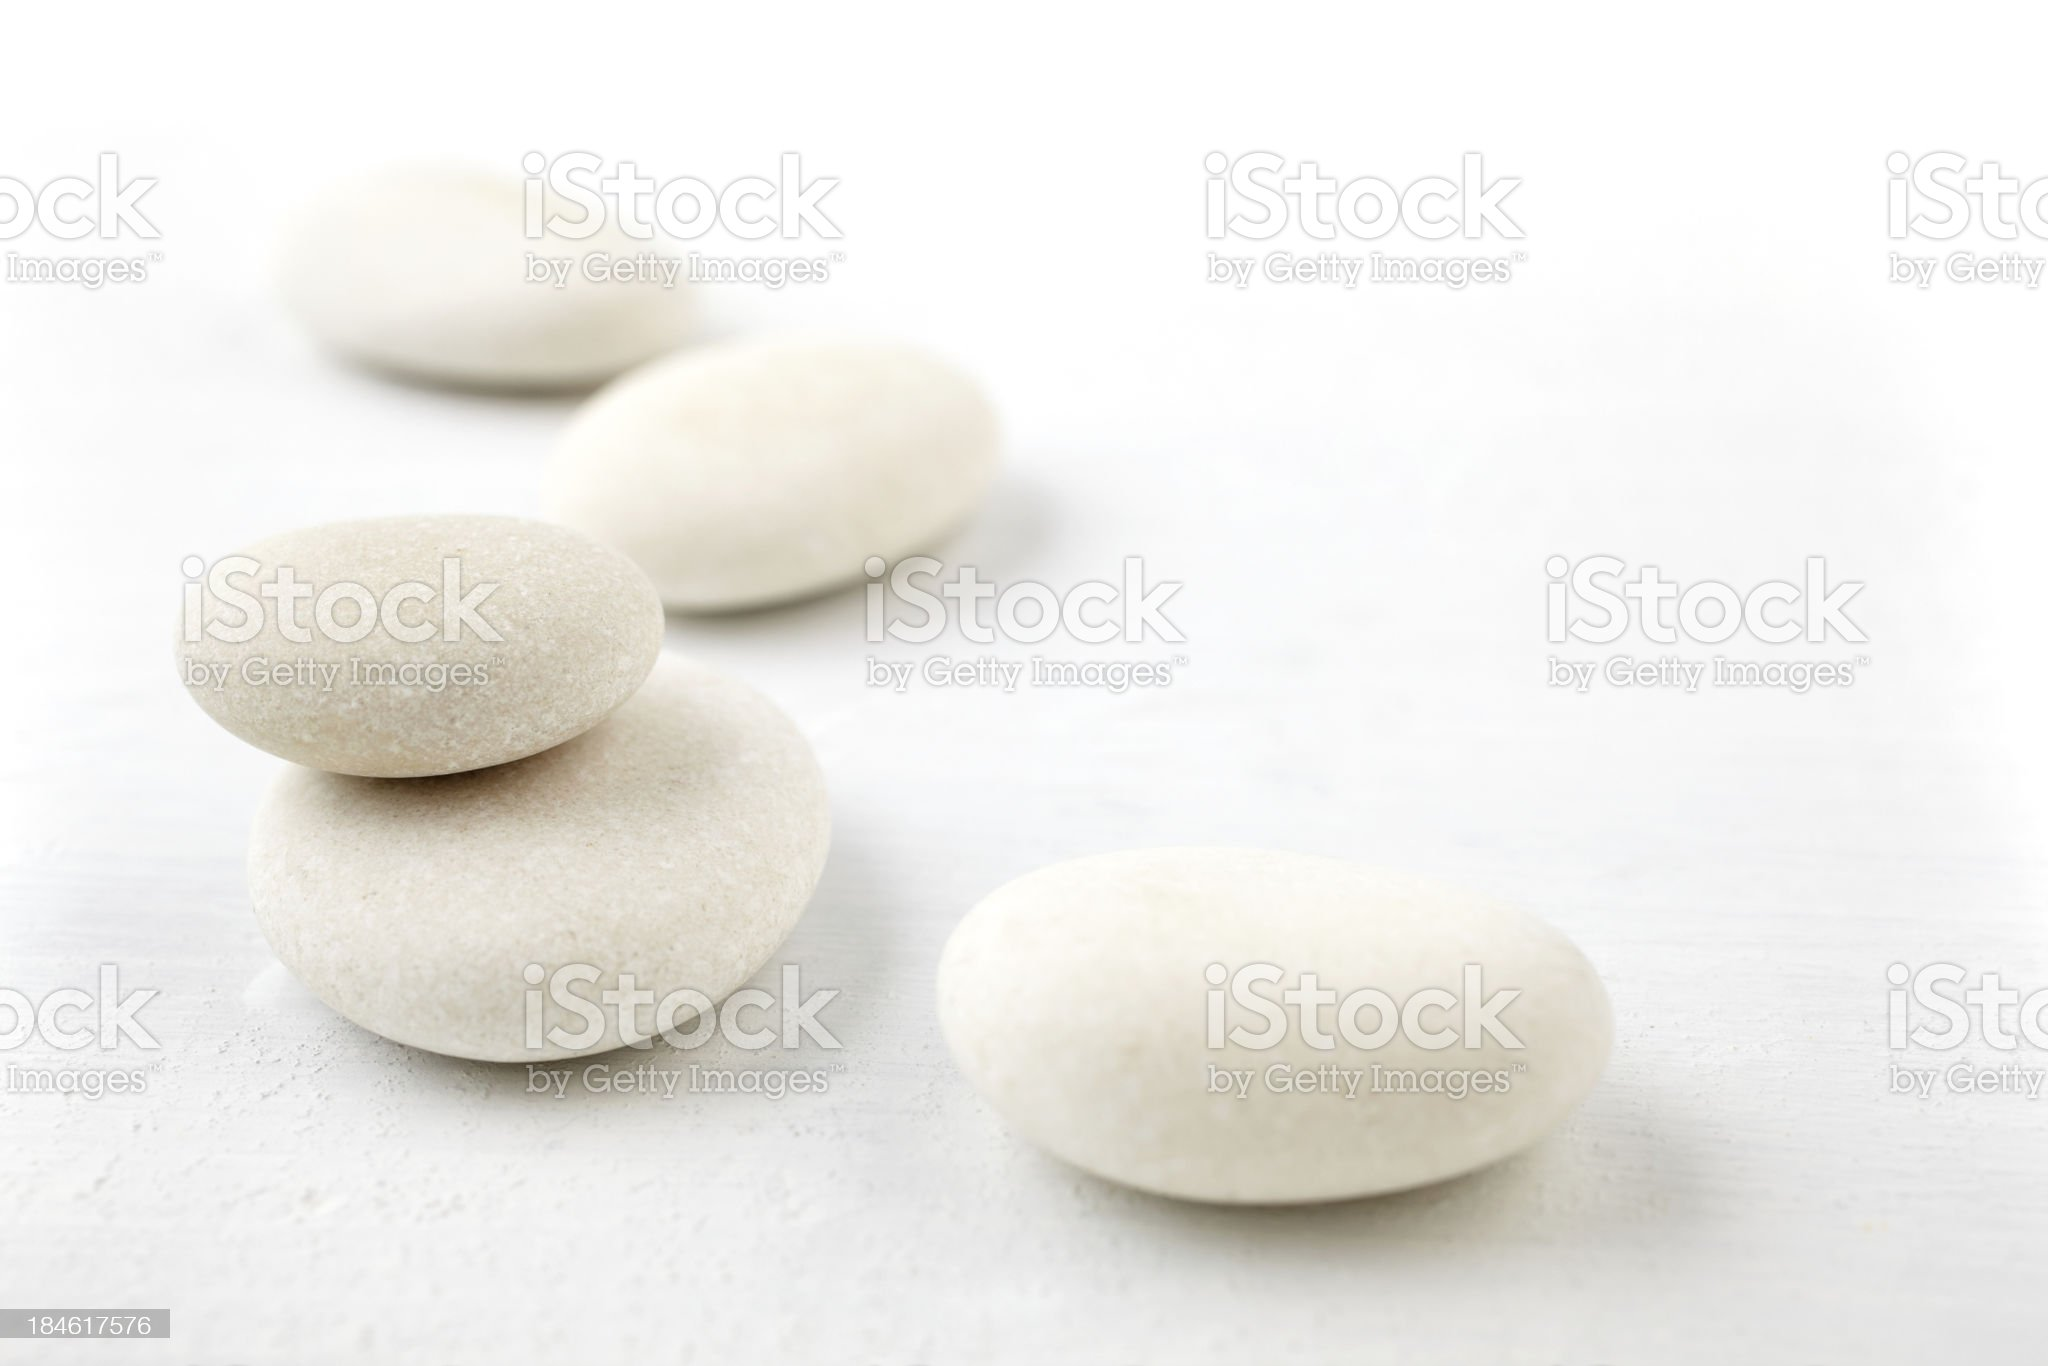 Still life white rocks on linen surface with copy space royalty-free stock photo